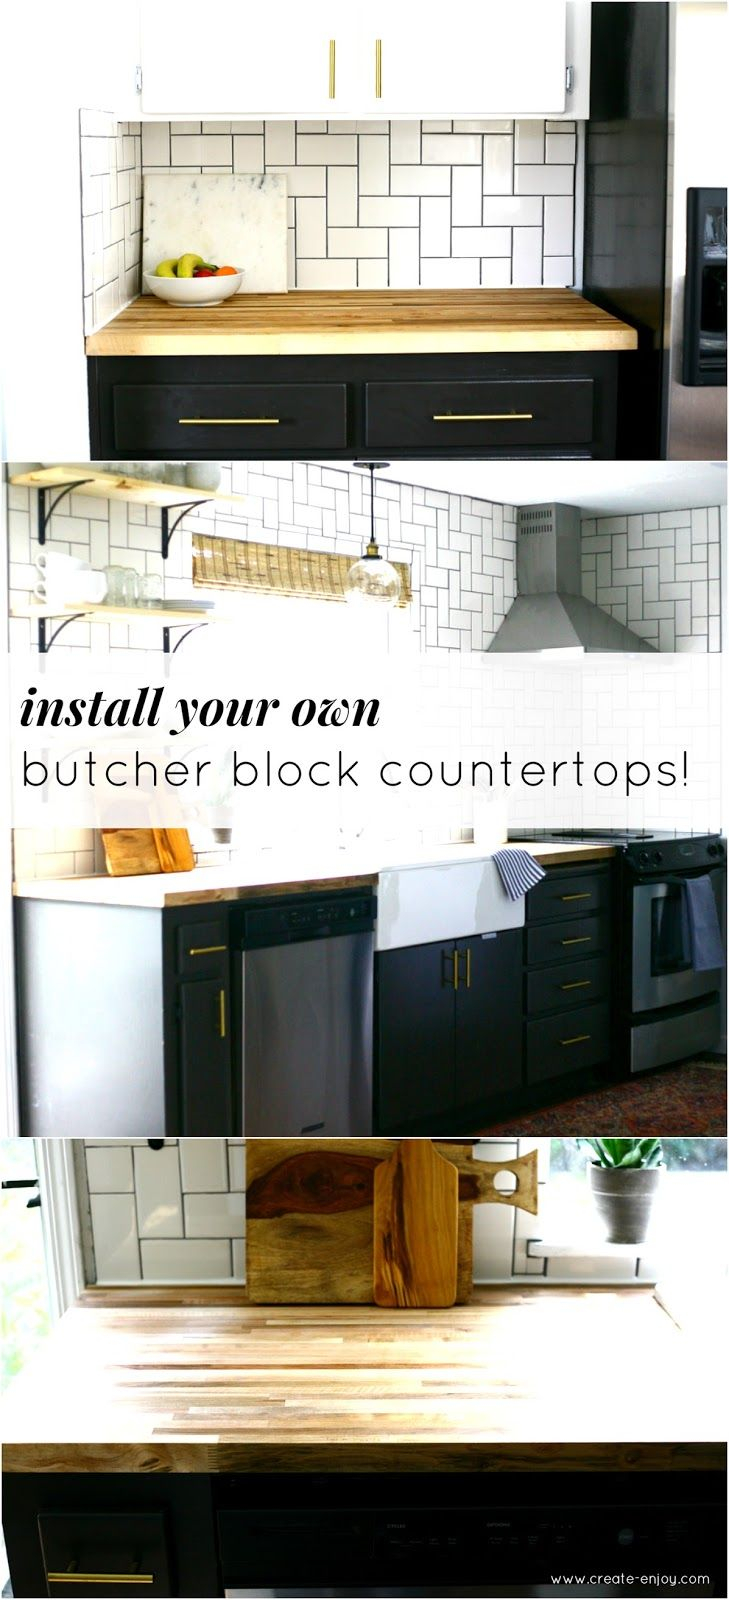 all about our diy butcher block countertops